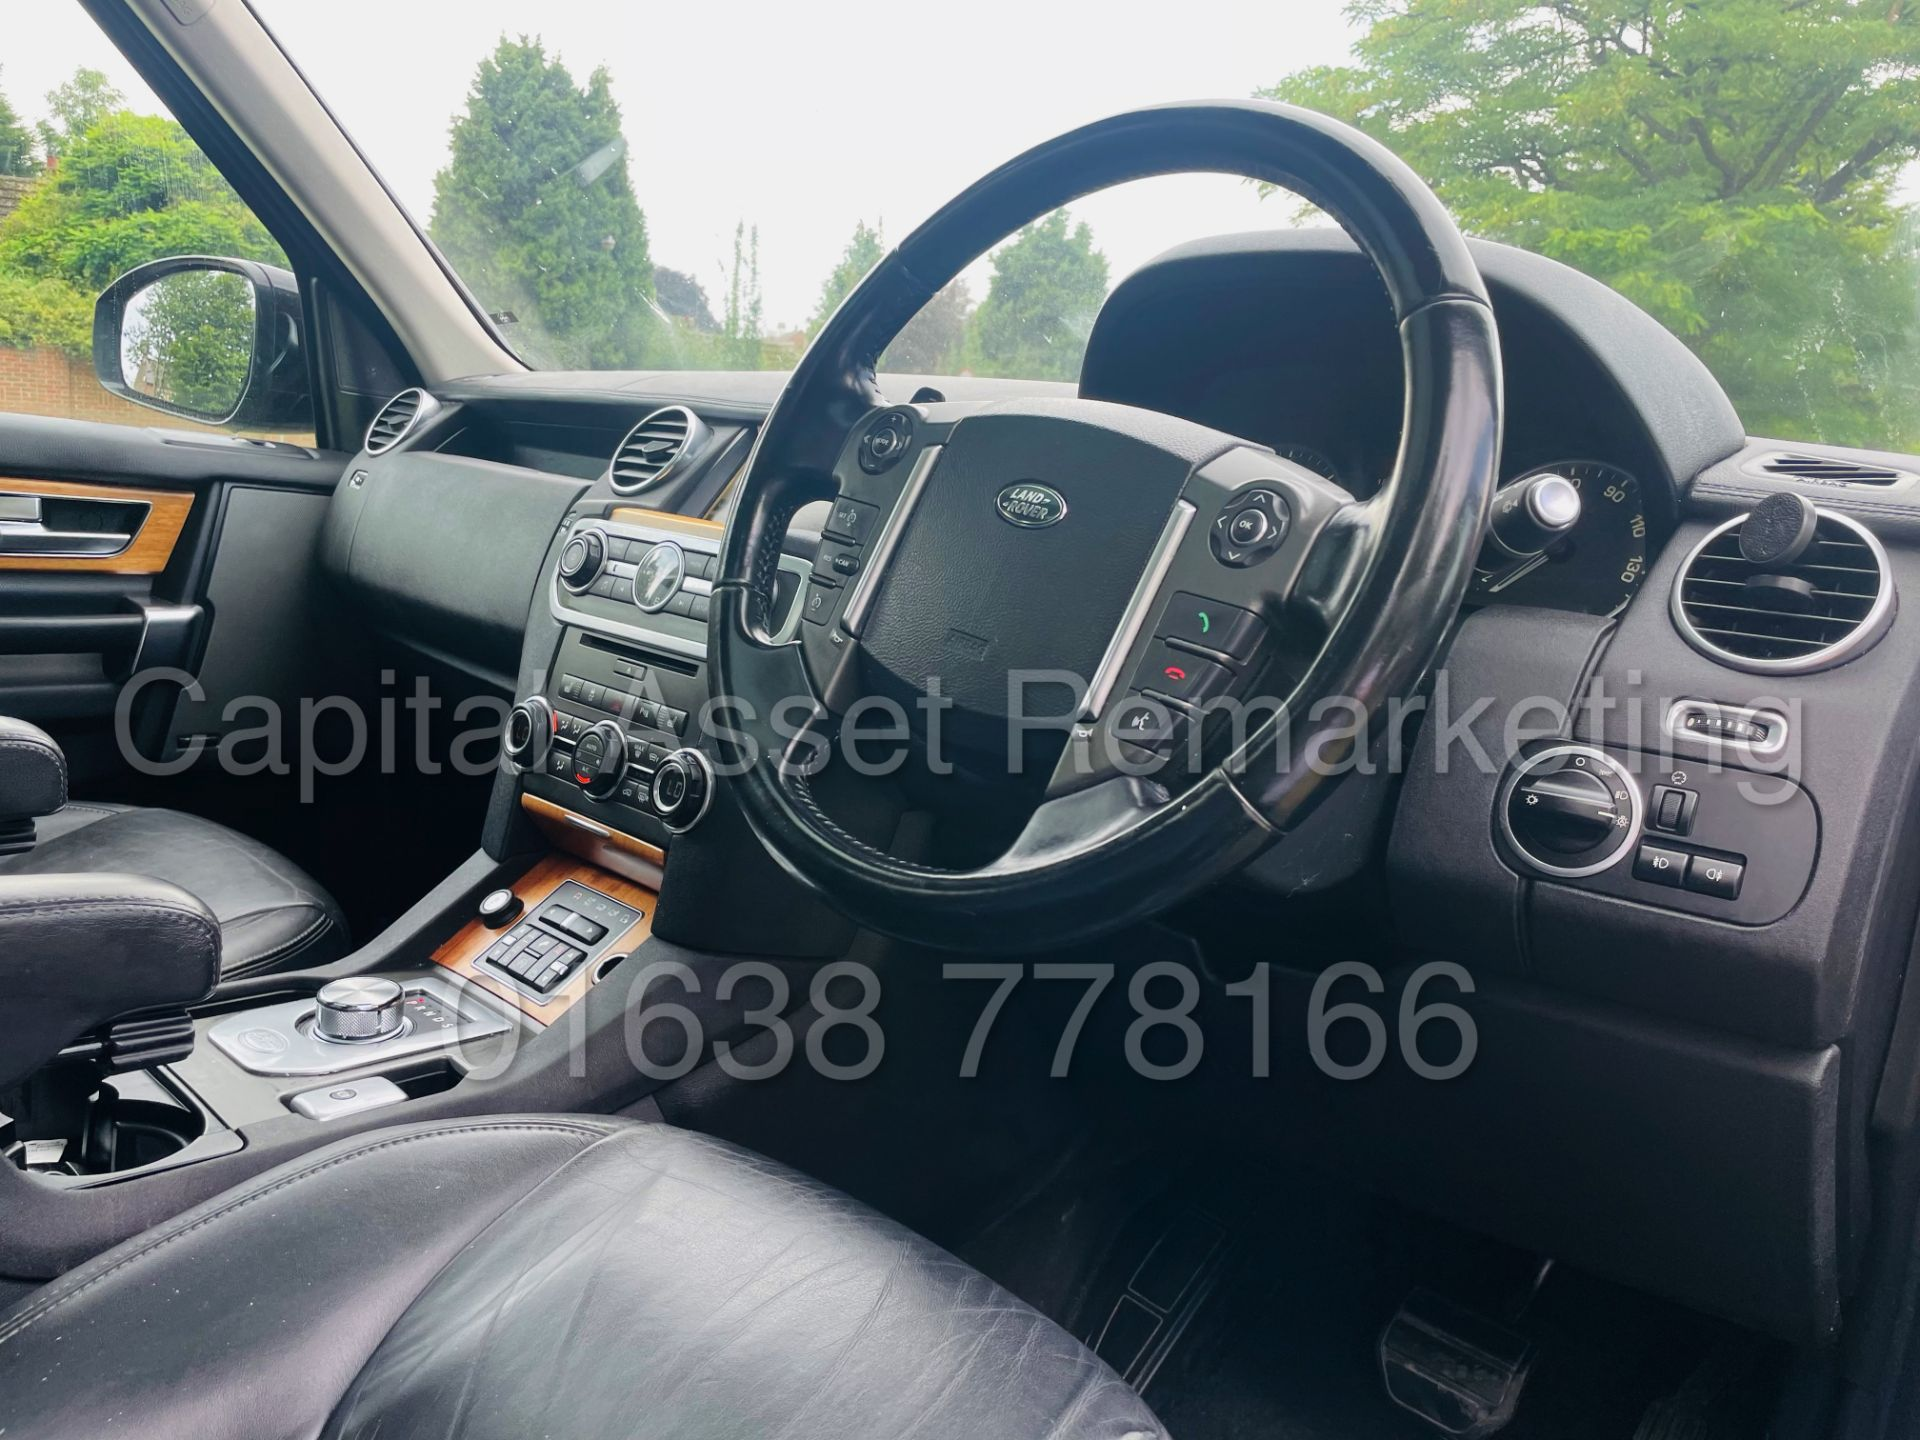 LAND ROVER DISCOVERY 4 *HSE* 7 SEATER SUV (2014 - NEW MODEL) '3.0 SDV6 - 255 BHP - 8 SPEED AUTO' - Image 45 of 61